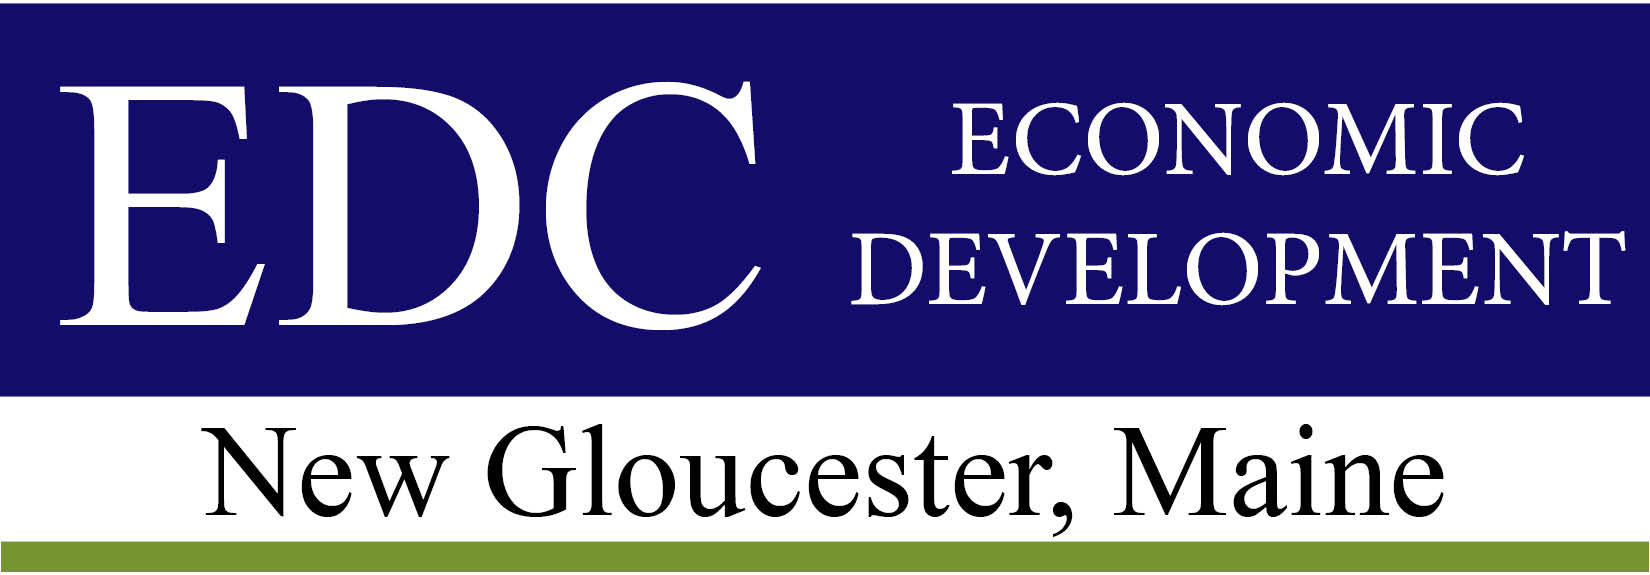 Business Directory - New Gloucester, Maine